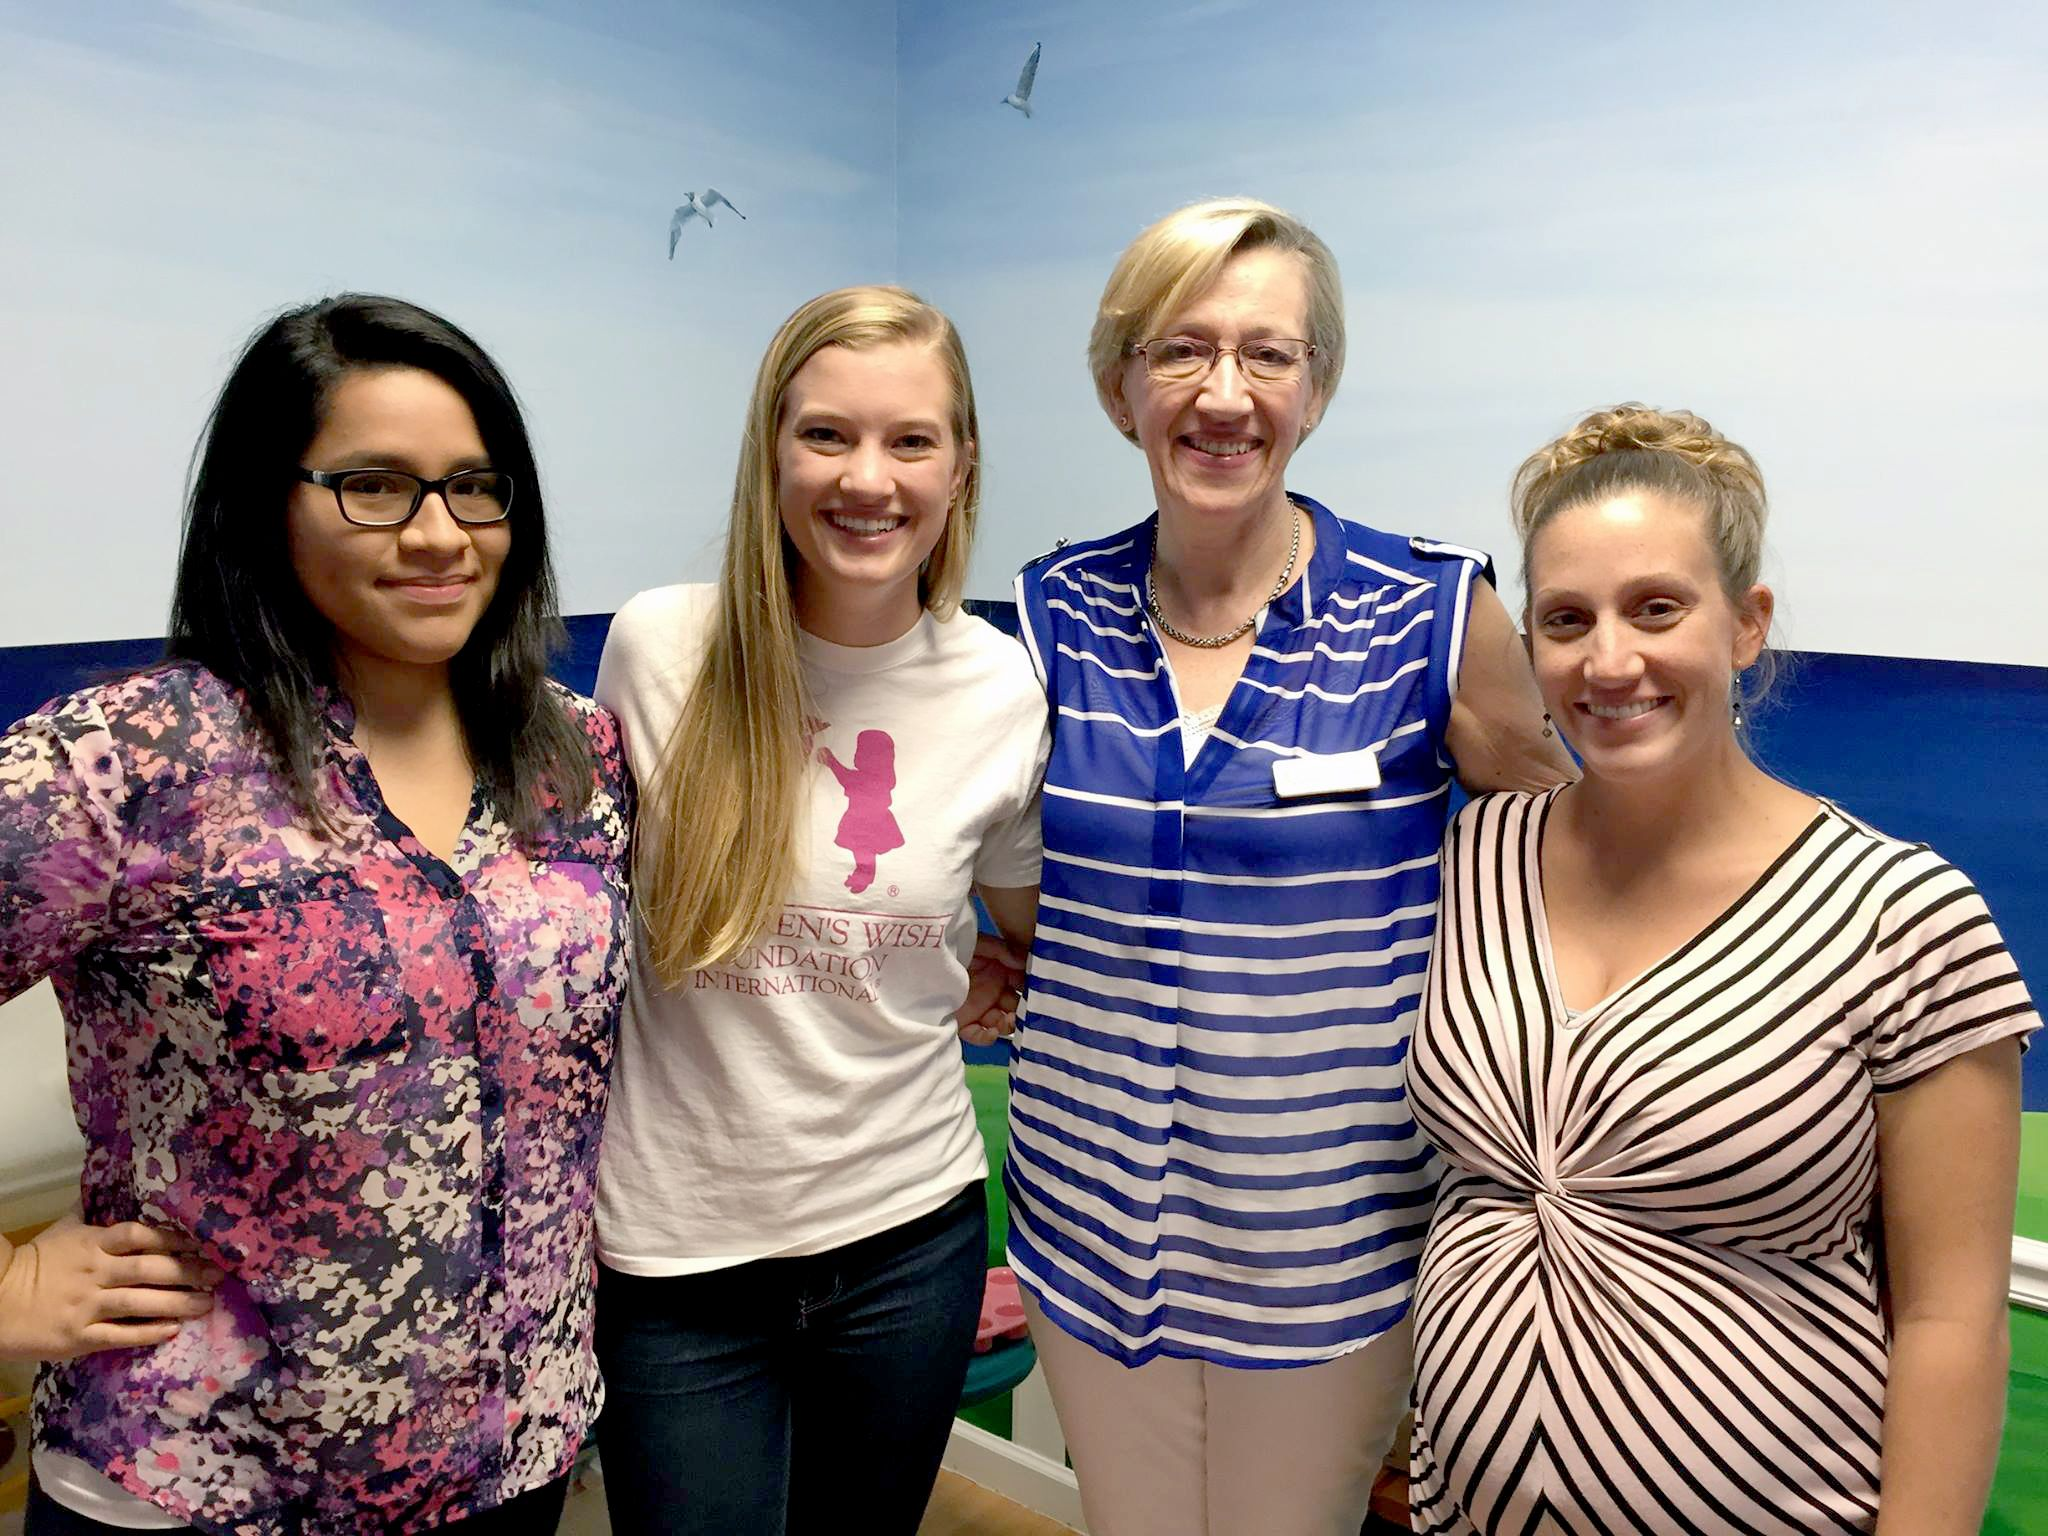 A Visit with POST Pediatric Oncology Support Children's